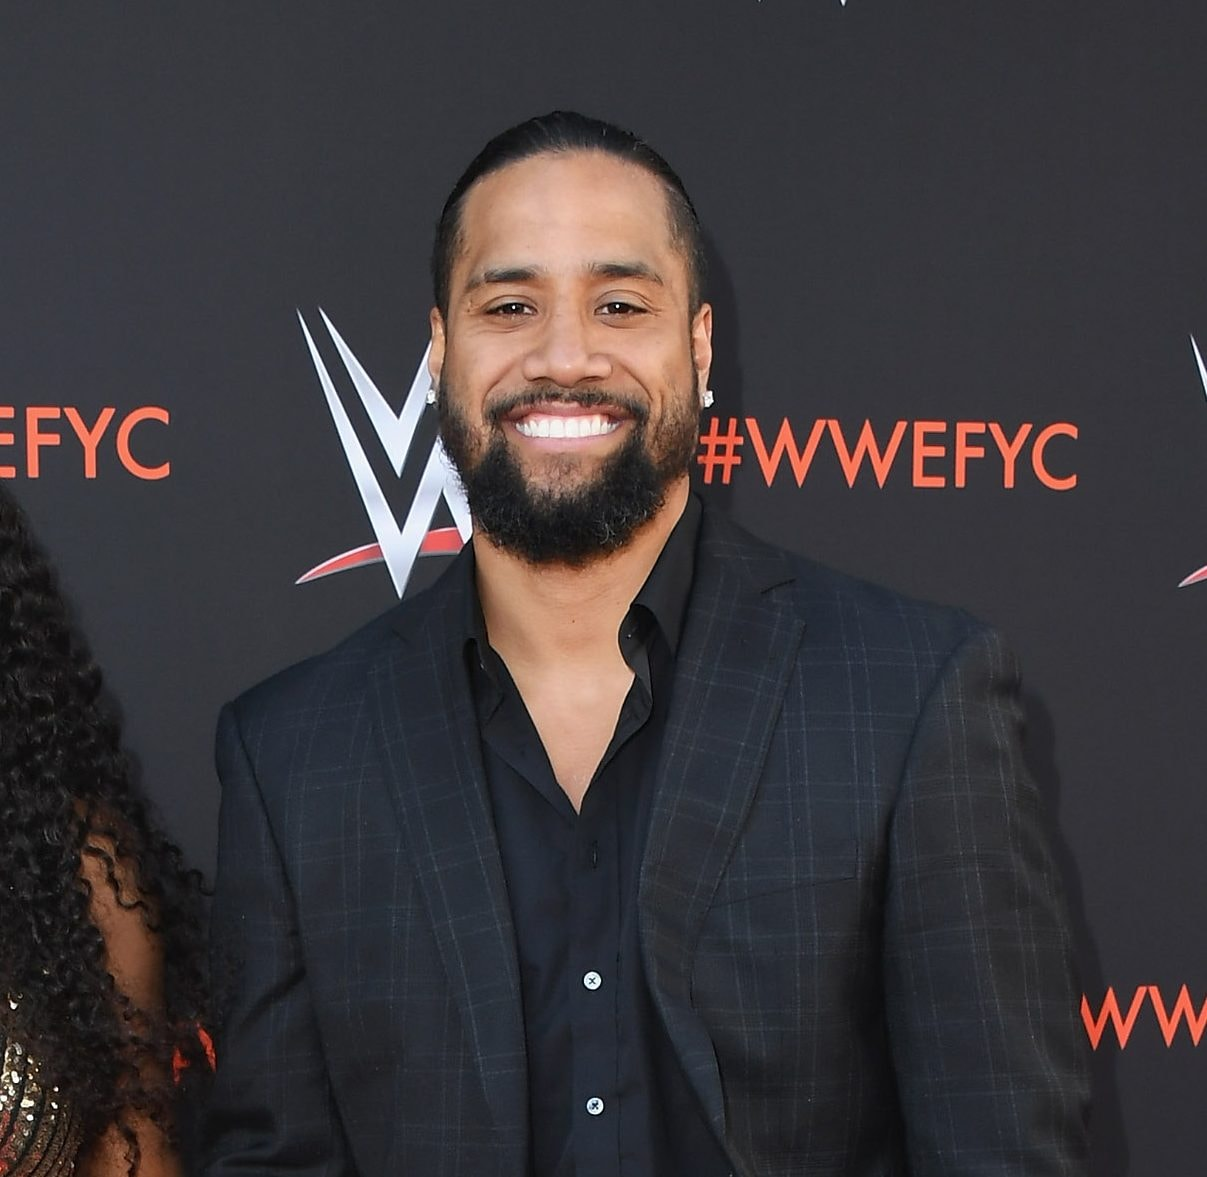 WWE Superstar Jimmy Uso Arrested For DUI